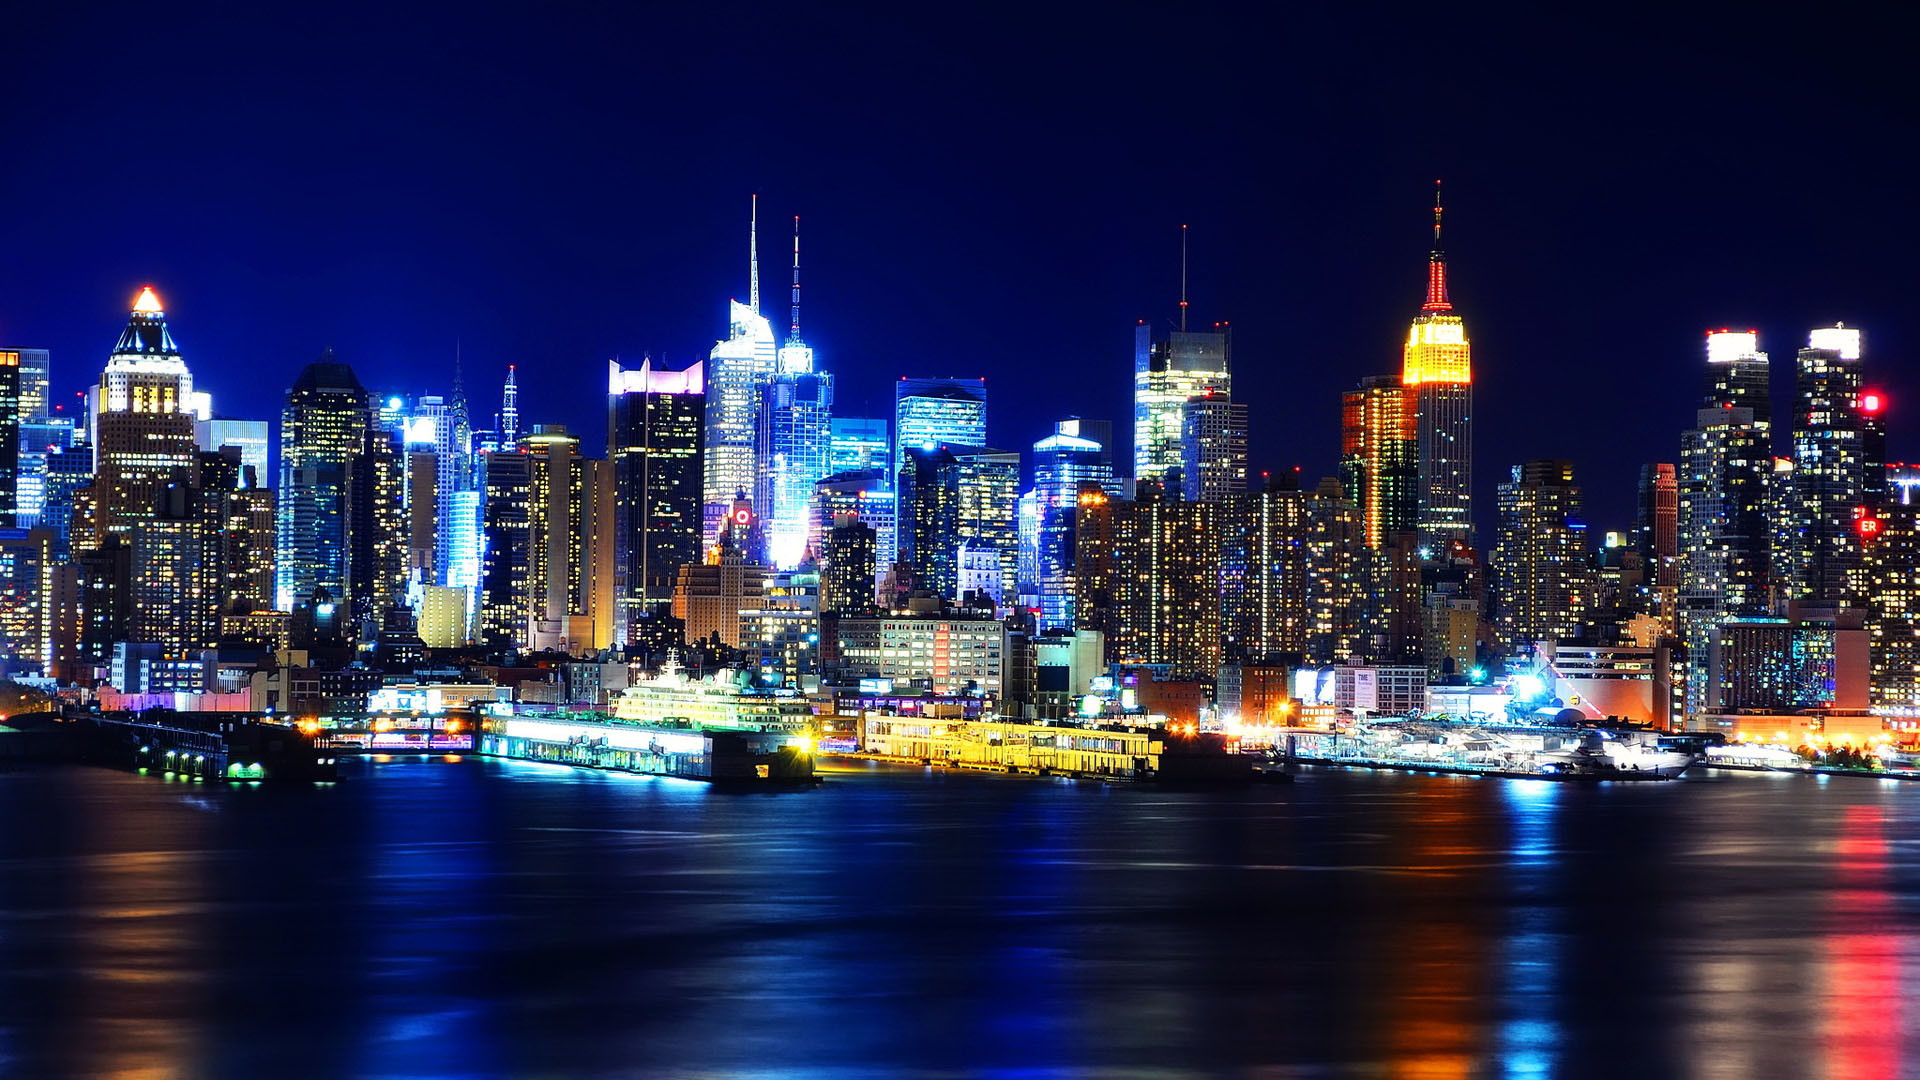 1920x1080 New York Night Skyline Wallpaper 39006 In City Telusers New York Skyline